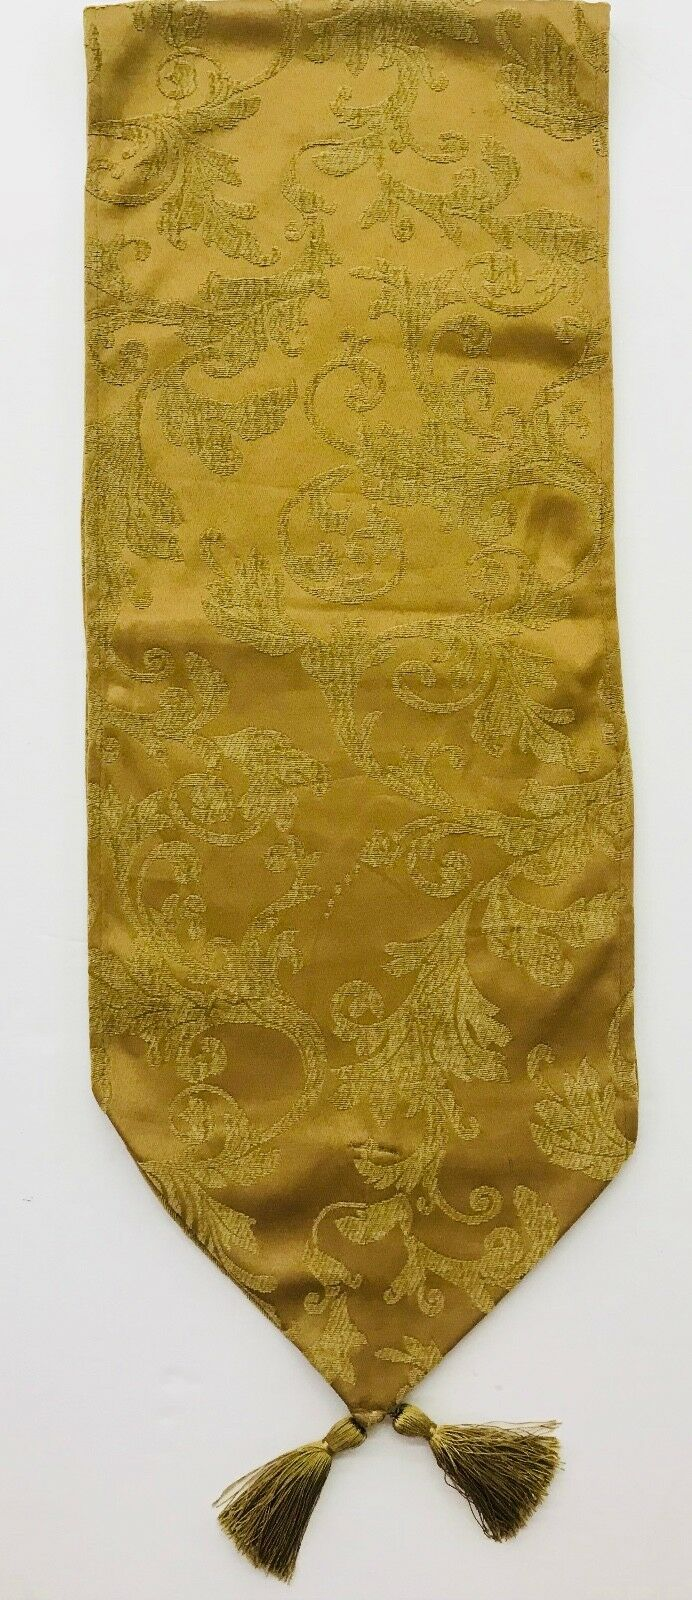 Table Runner Honey Gold Traditional Elegant With Tassels 13 X 70 Inches